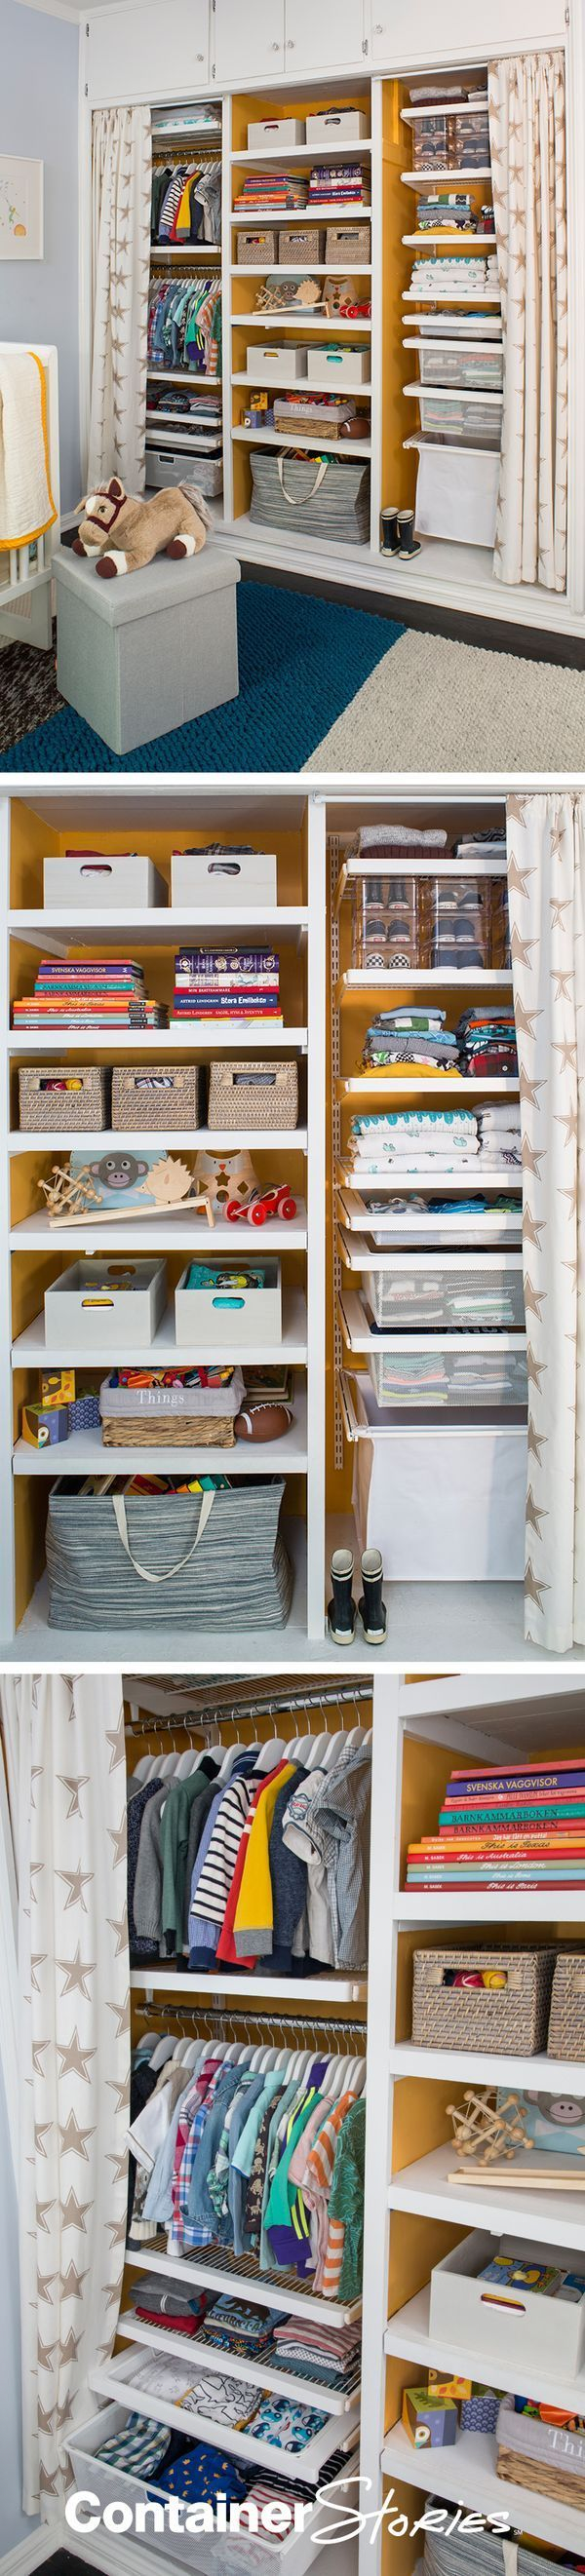 Superb See Our Elfa Closet Fit For Baby Finn! On Container Stories Now.